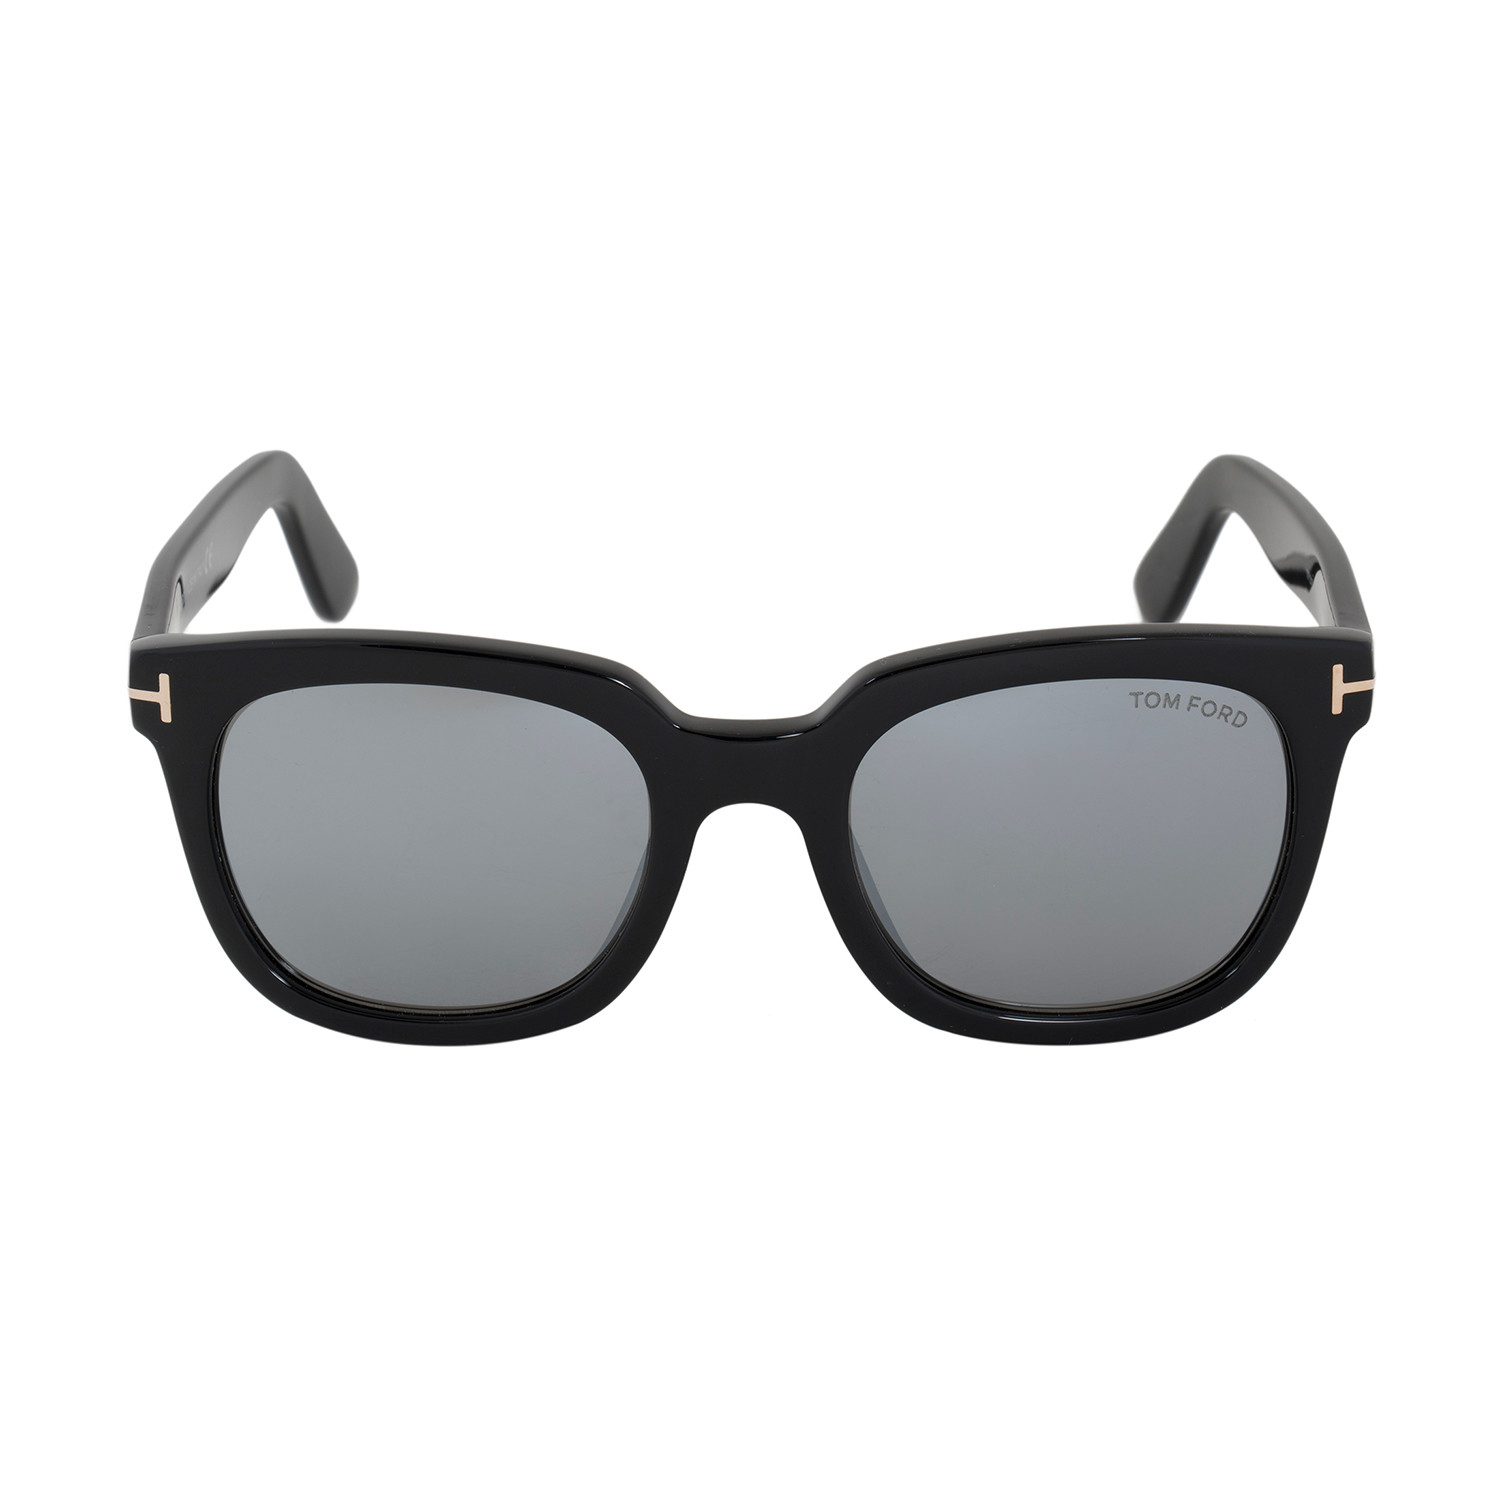 c8b539a276d13 Tom Ford - Signature Sunglasses - Touch of Modern